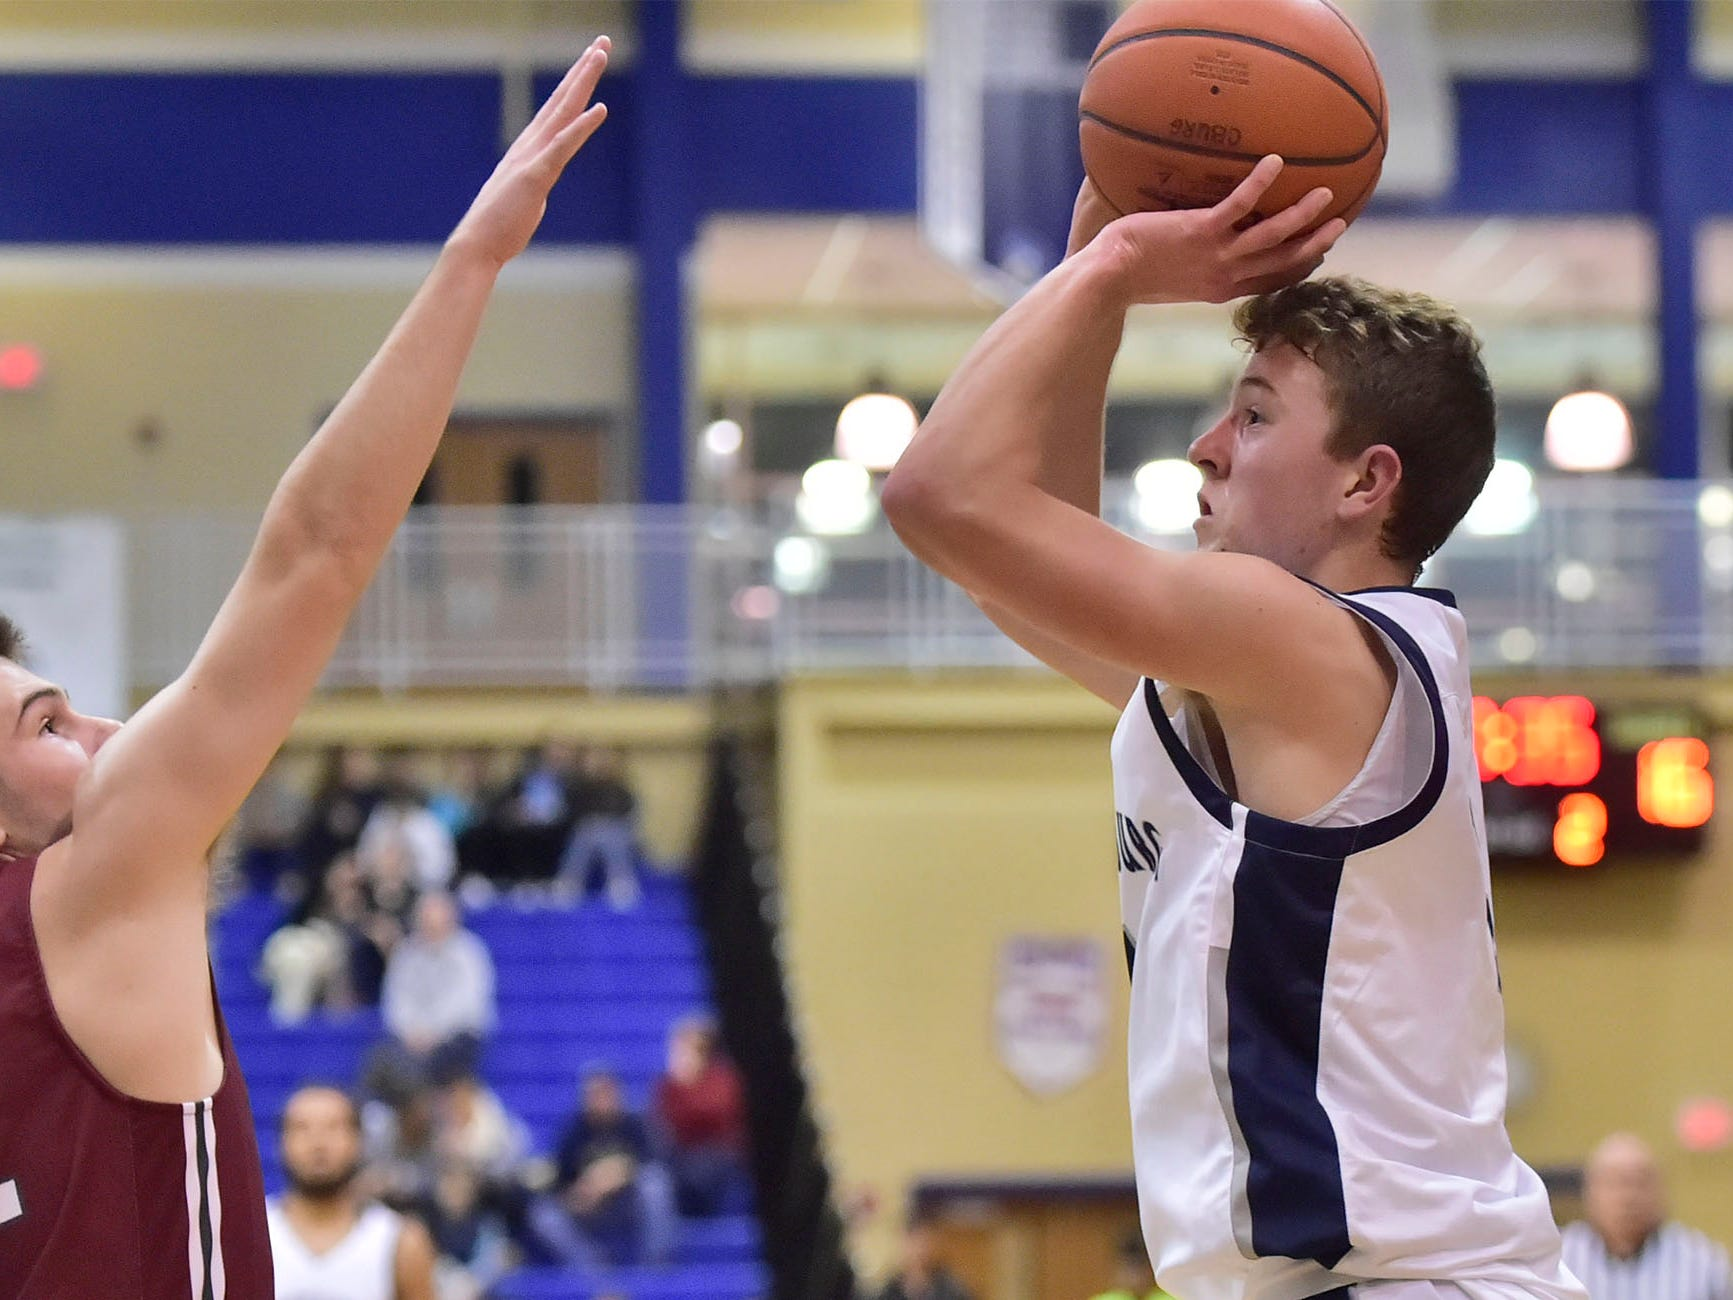 Braden Byers fires up a shot for the Trojans. Chambersburg dropped a buzzer-beater 42-40 to State College in PIAA D3 action, Friday, Dec. 14, 2018.